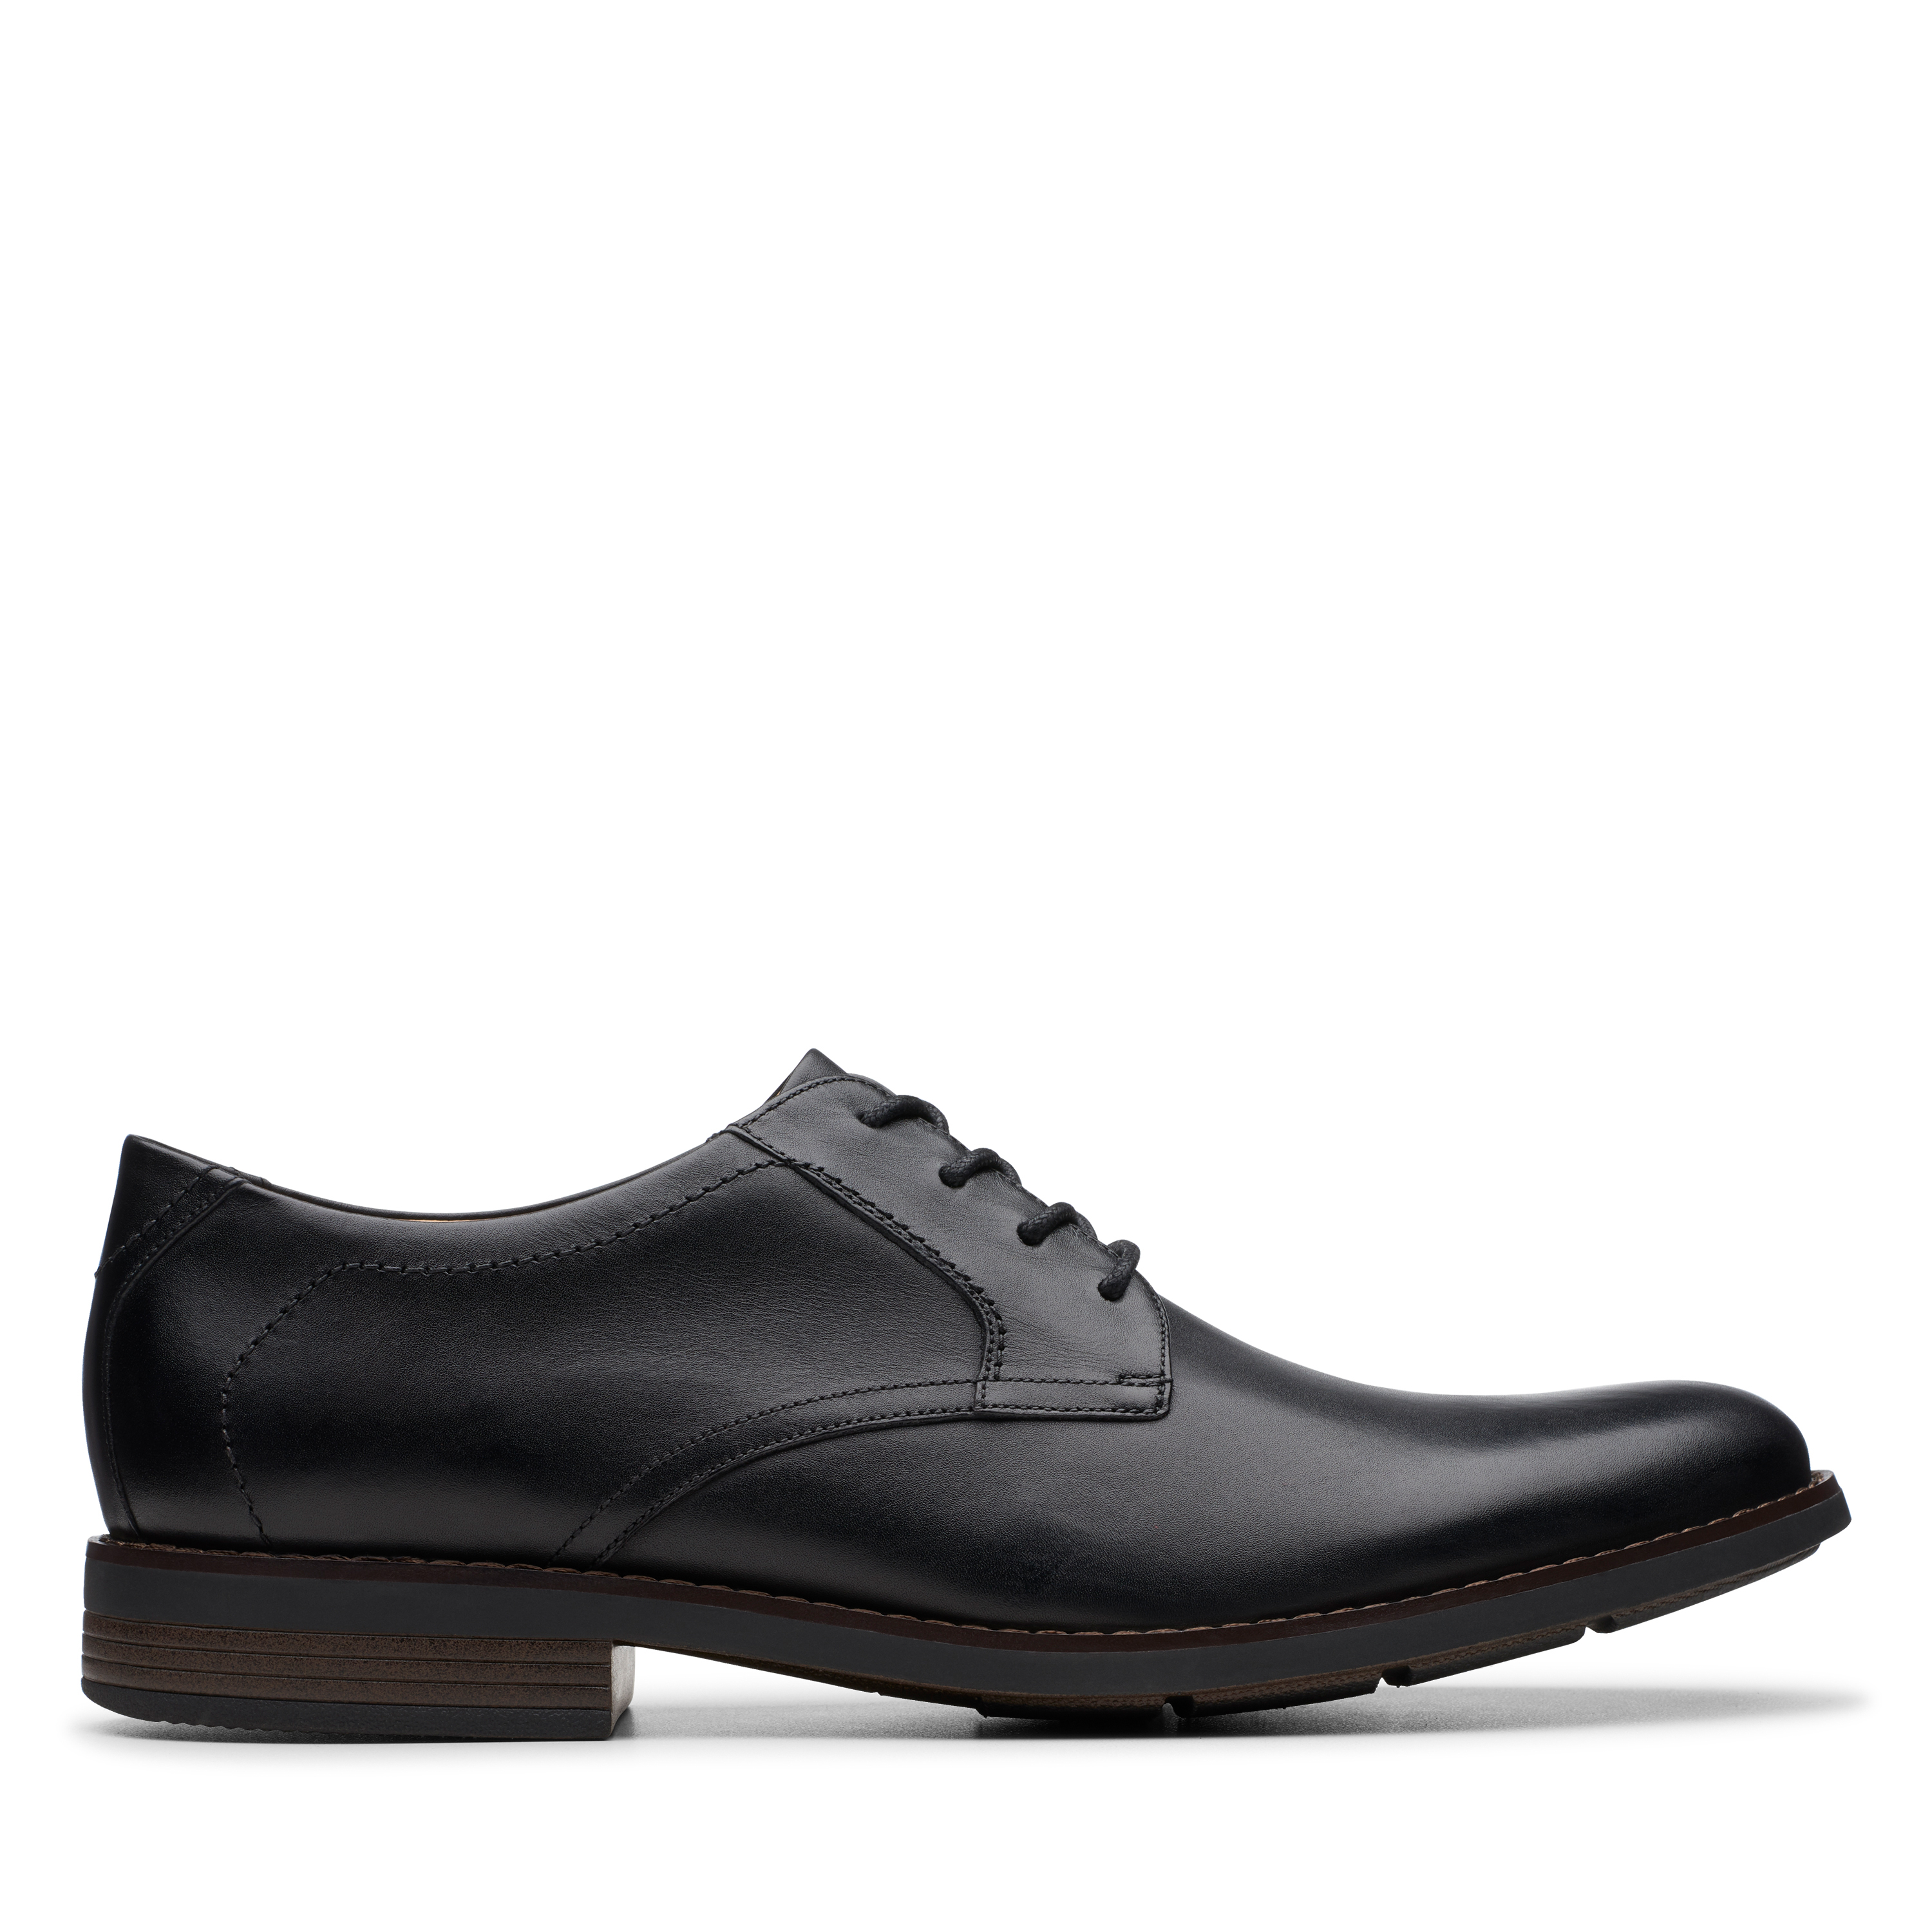 Clarks | BECKEN LACE BLACK LEATHER FORMAL LACE UP